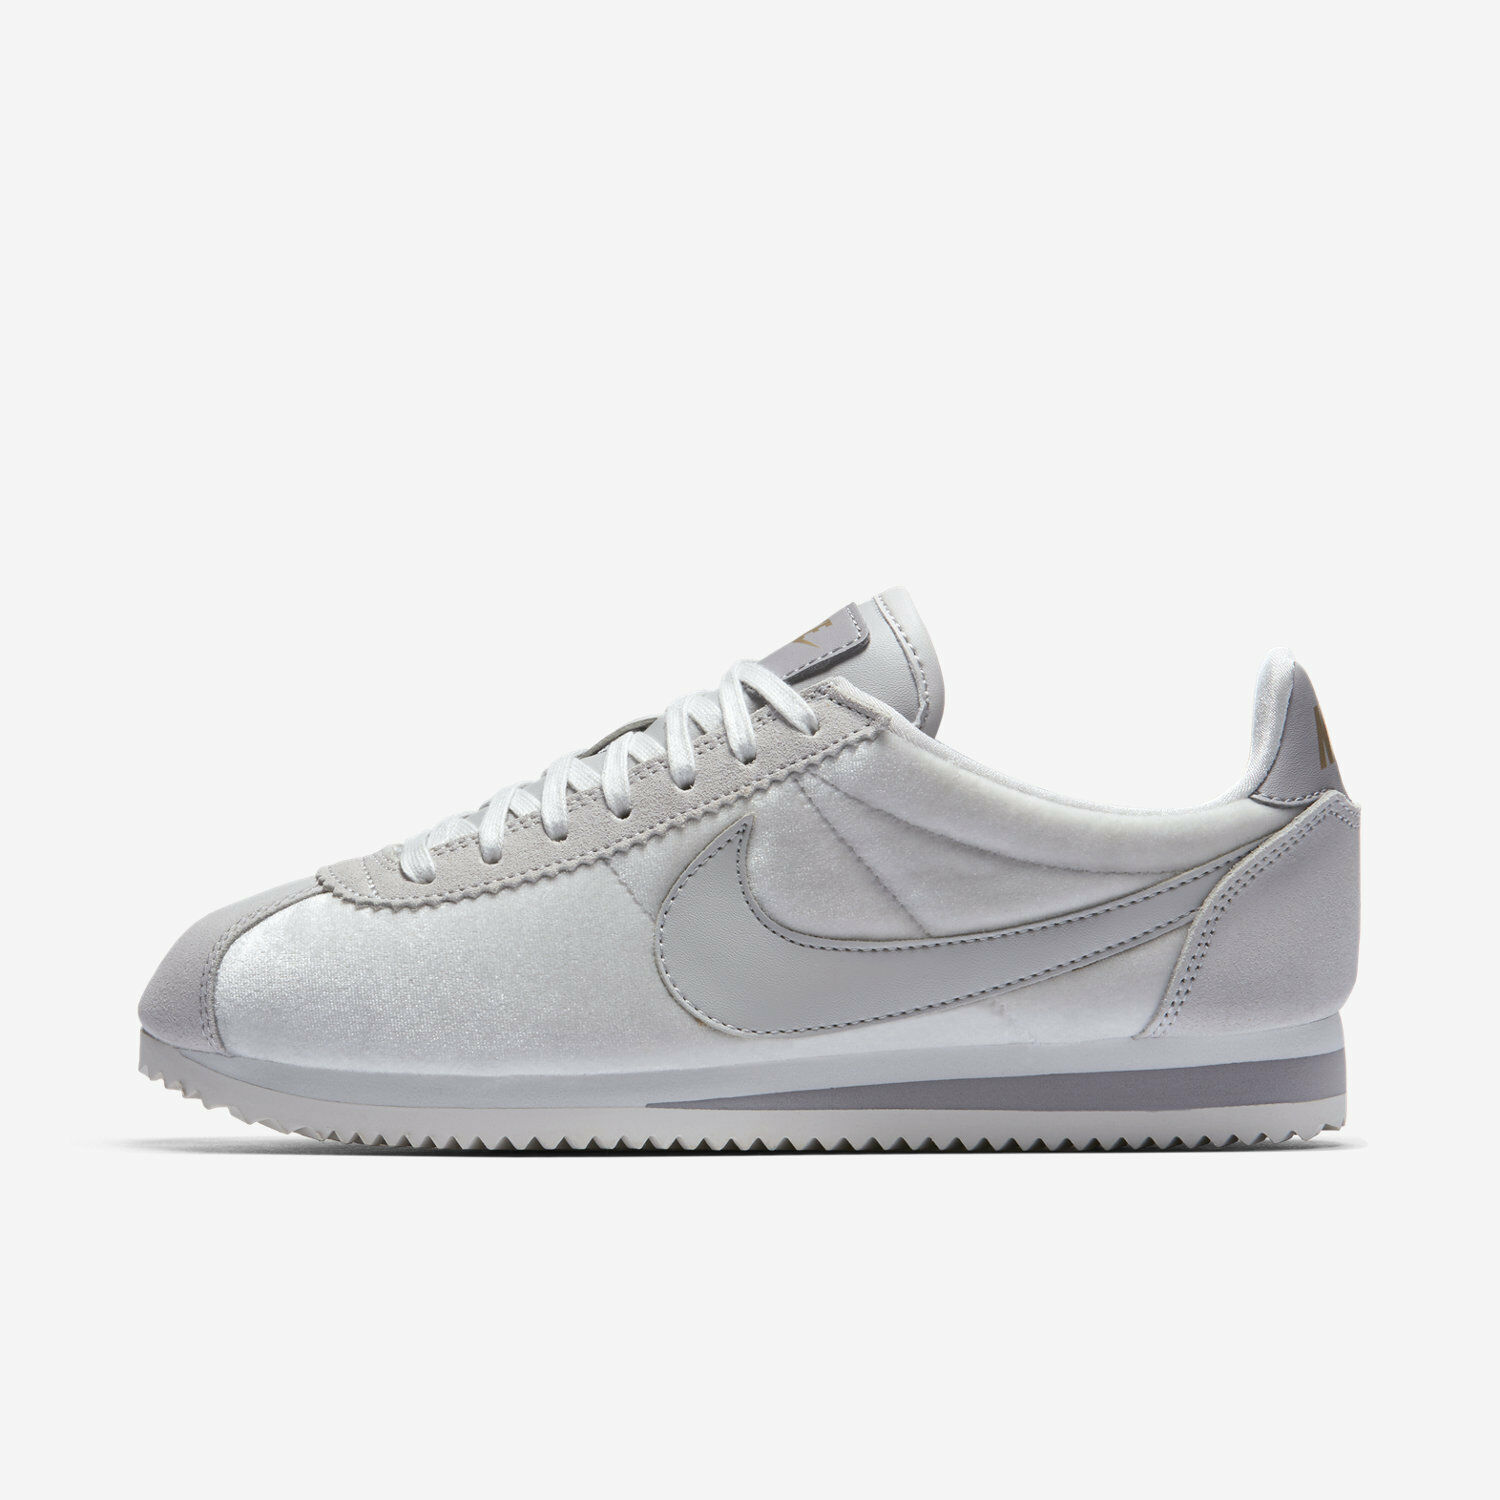 quality design 99e64 51eef Womens Size 12 Nike Nike Nike Classic Cortez SE Special Edition shoes Vast  Grey 902856 011